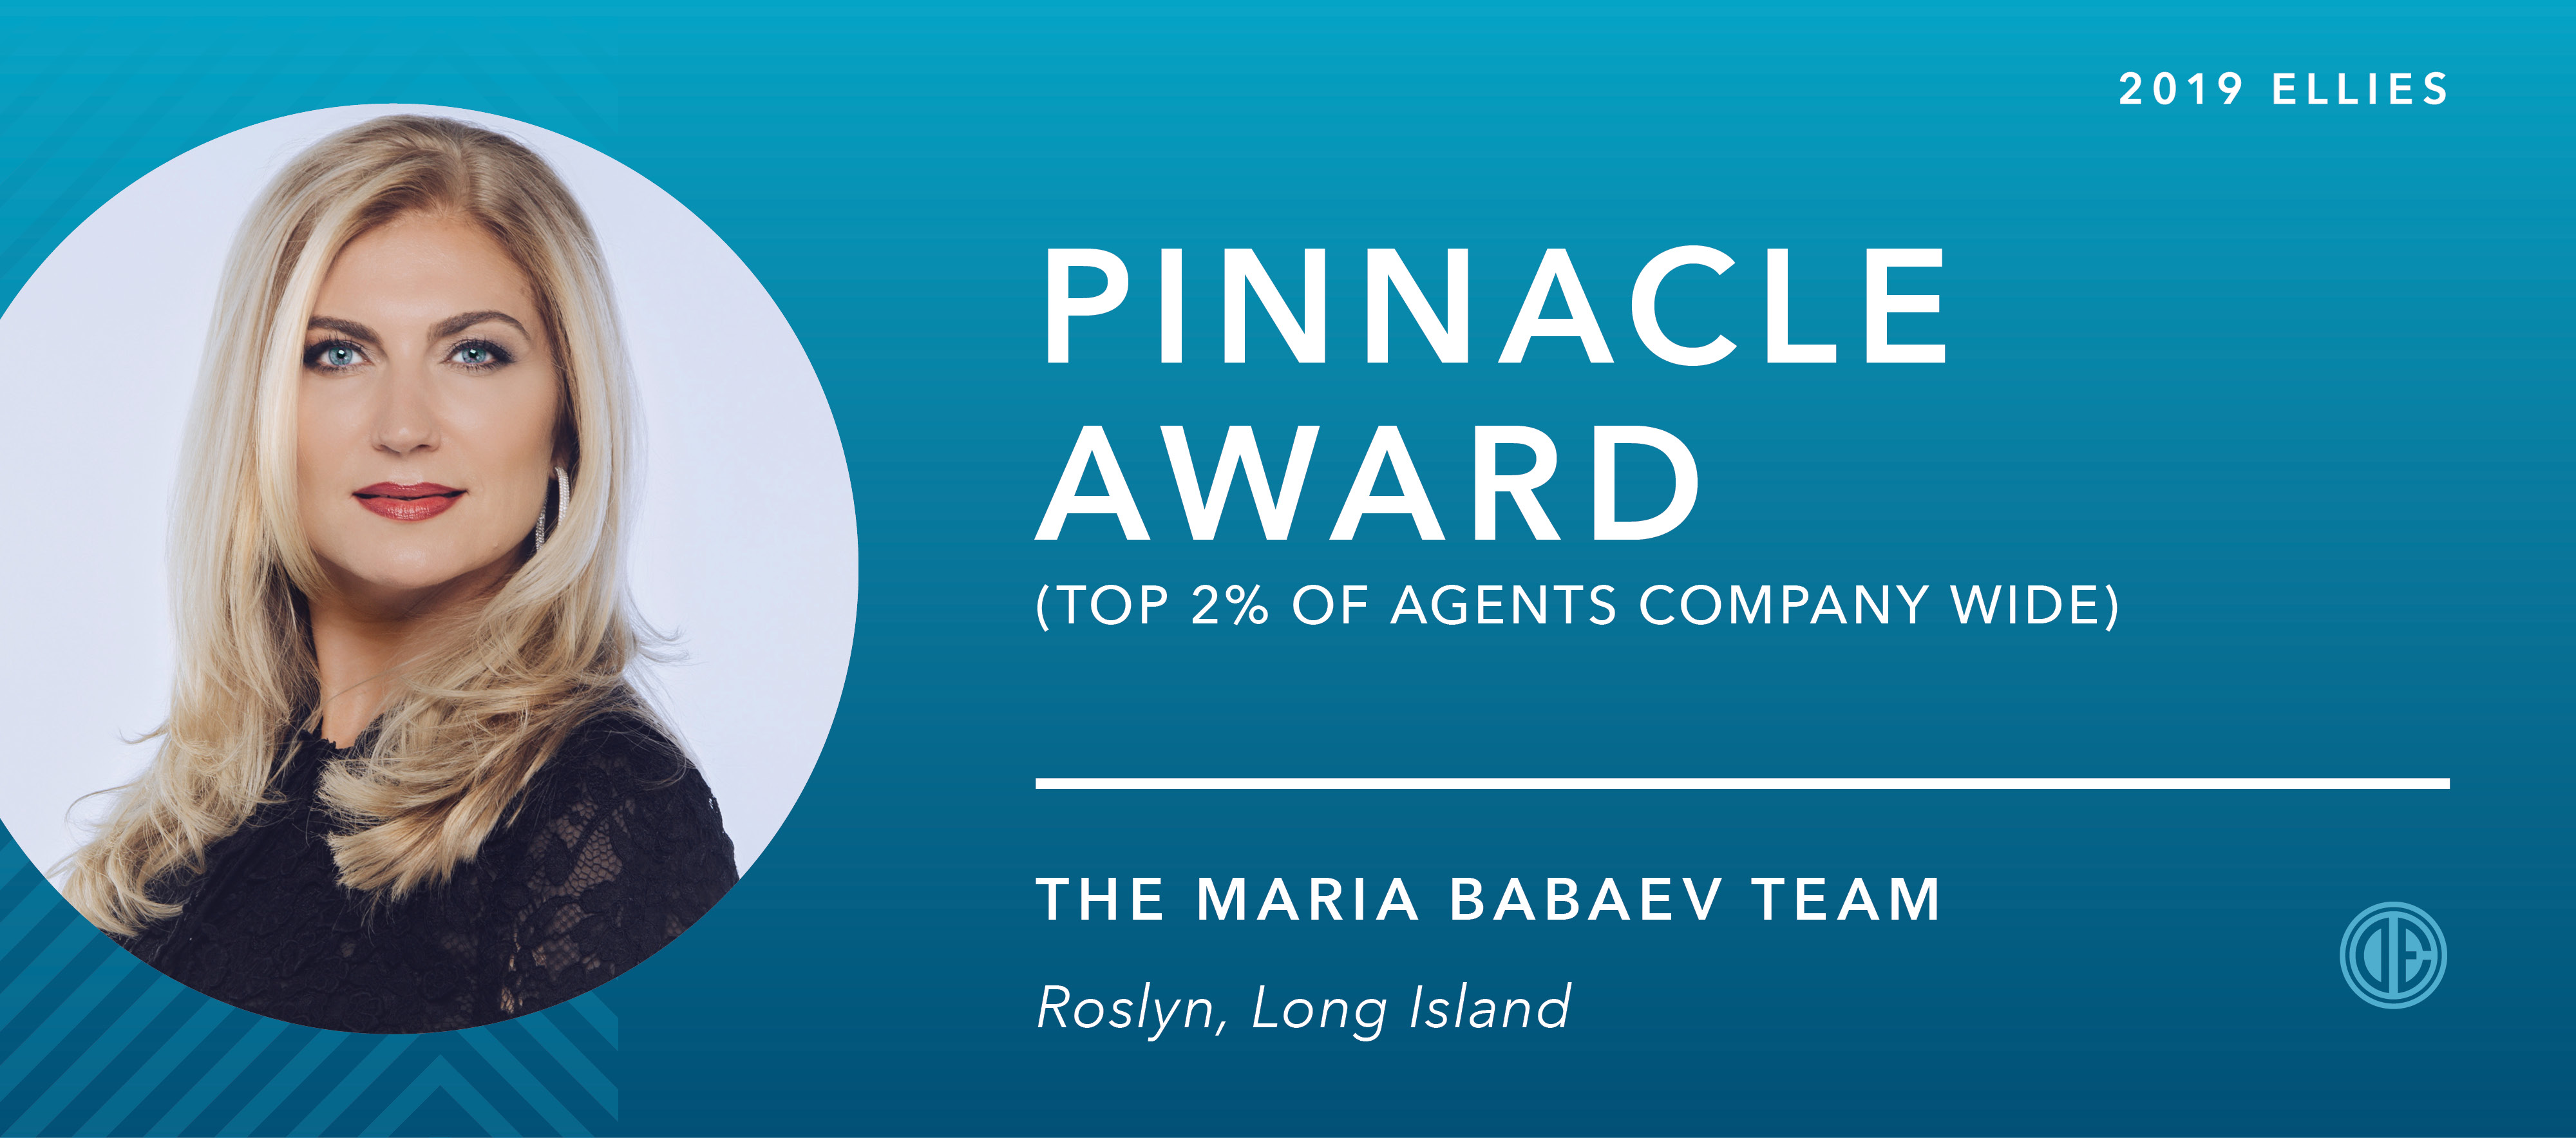 The Maria Babaev Team Takes Home Another Pinnacle Award – Top 2% Company Wide